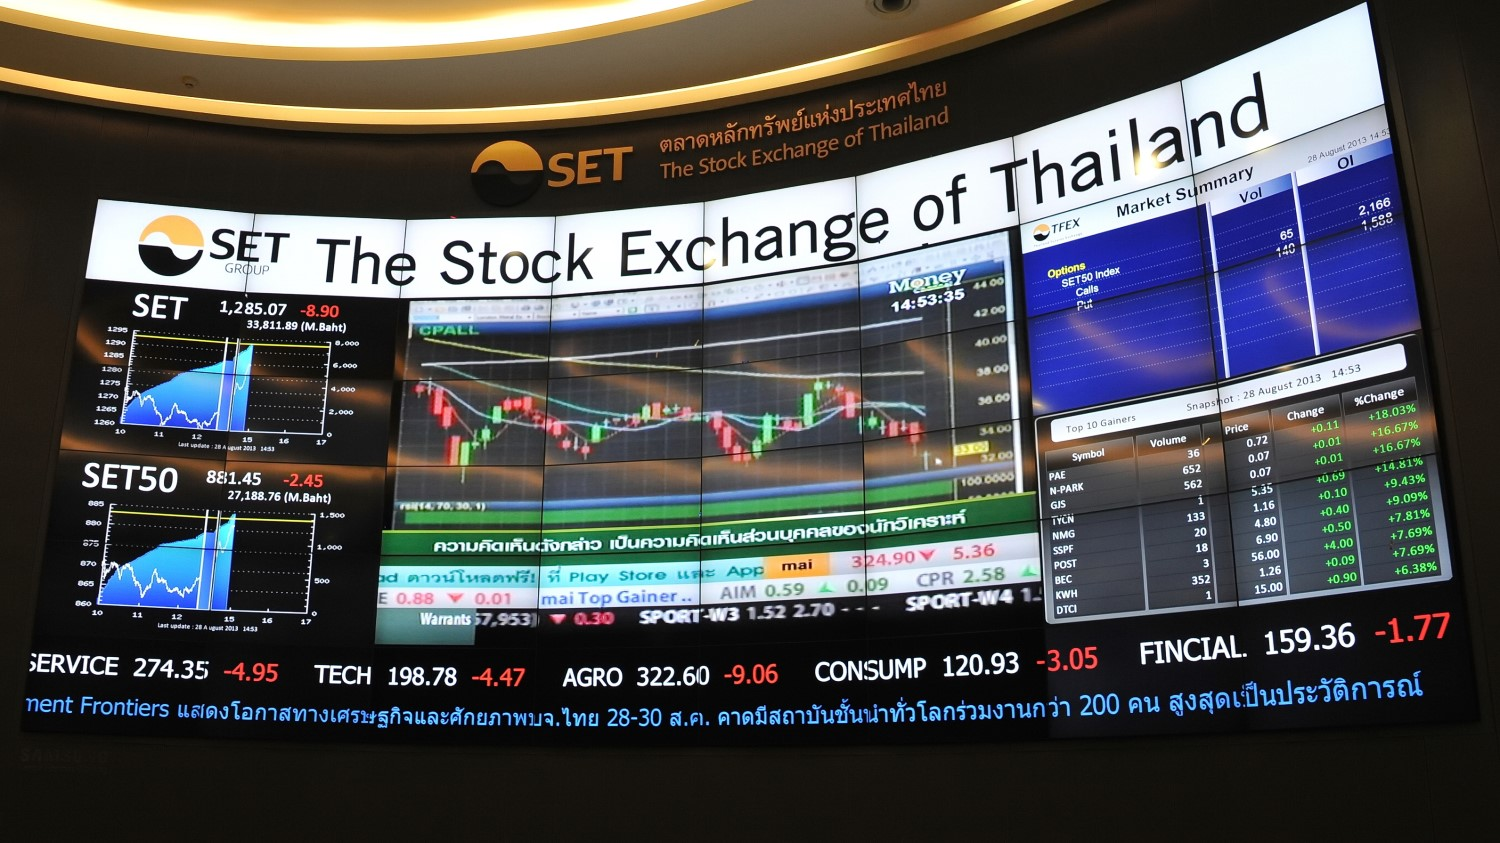 Thai Stock Exchange Plans to Launch a Crypto Trading Platform - CoinDesk